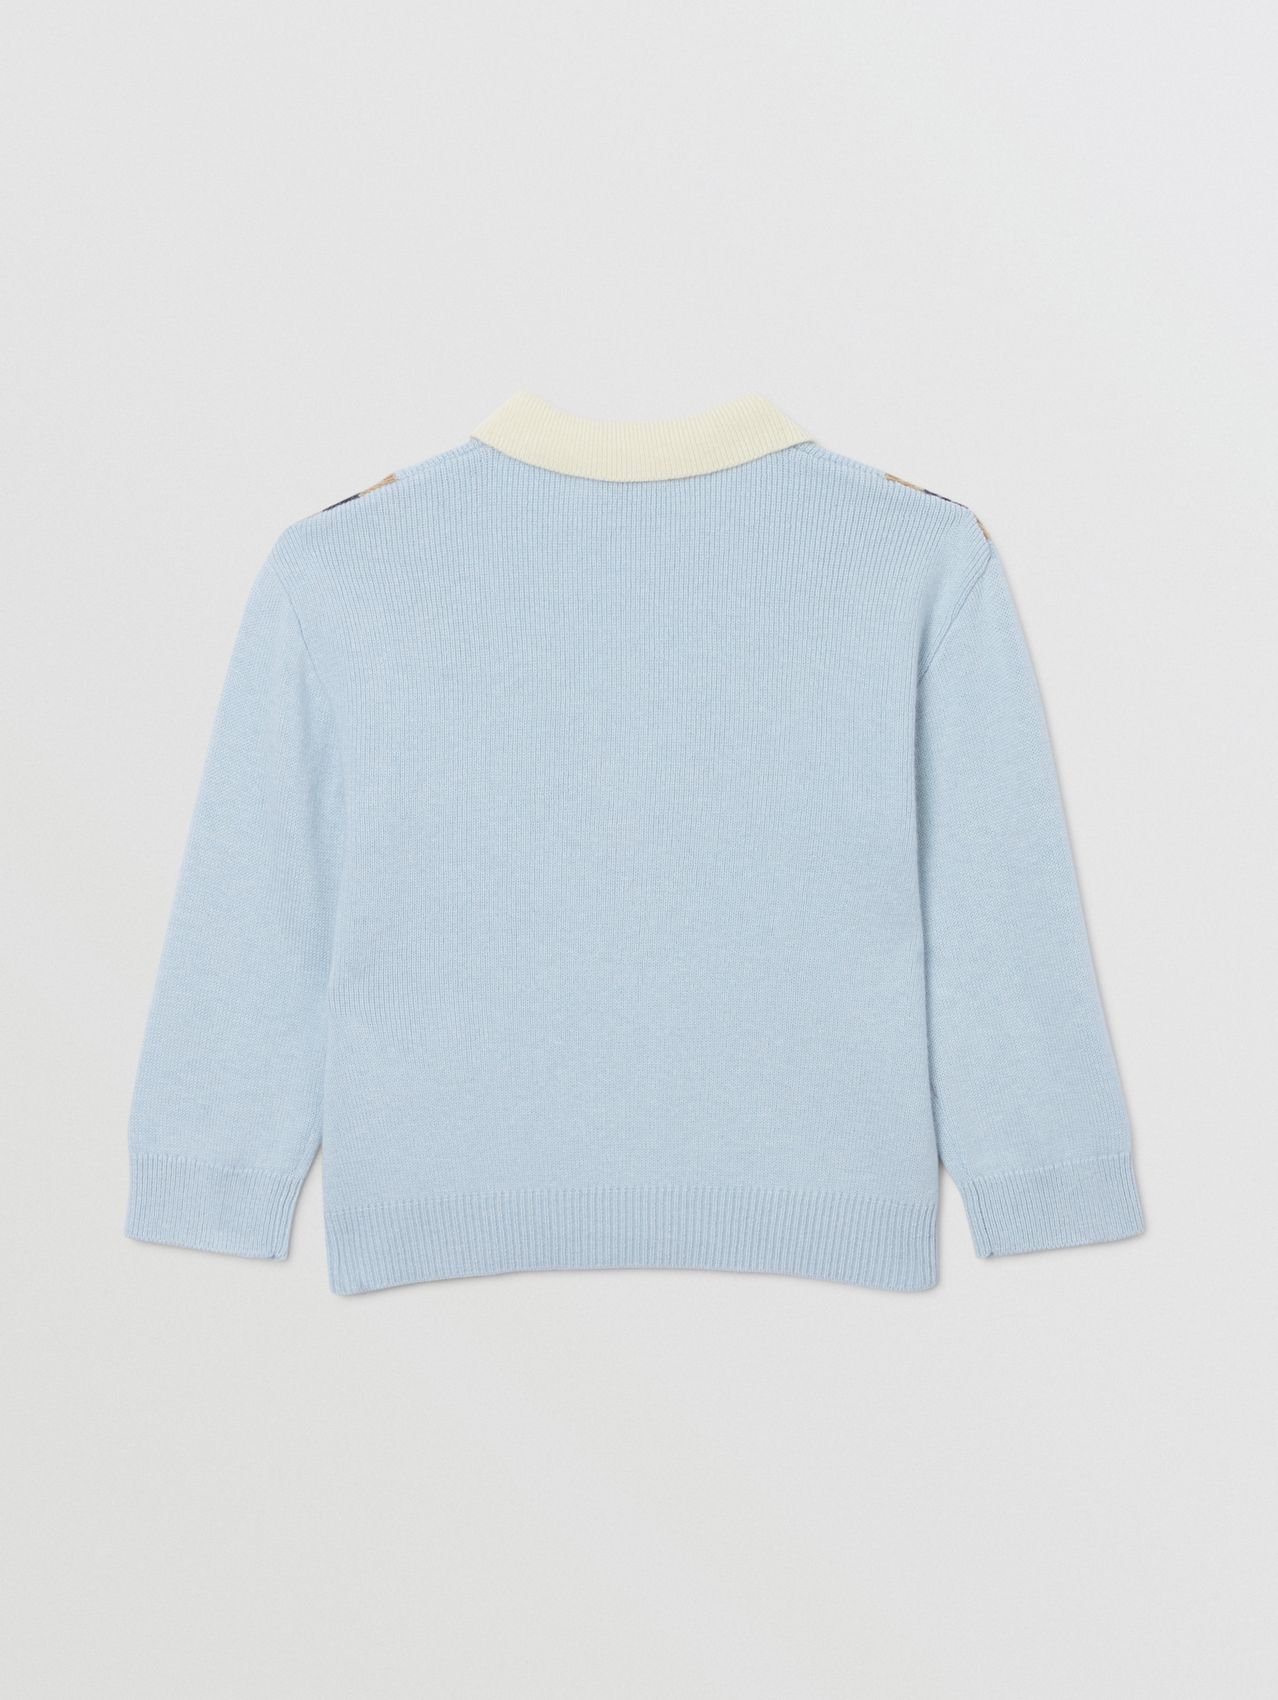 Long-sleeve Knit Cashmere Cotton Polo Shirt in Light Blue